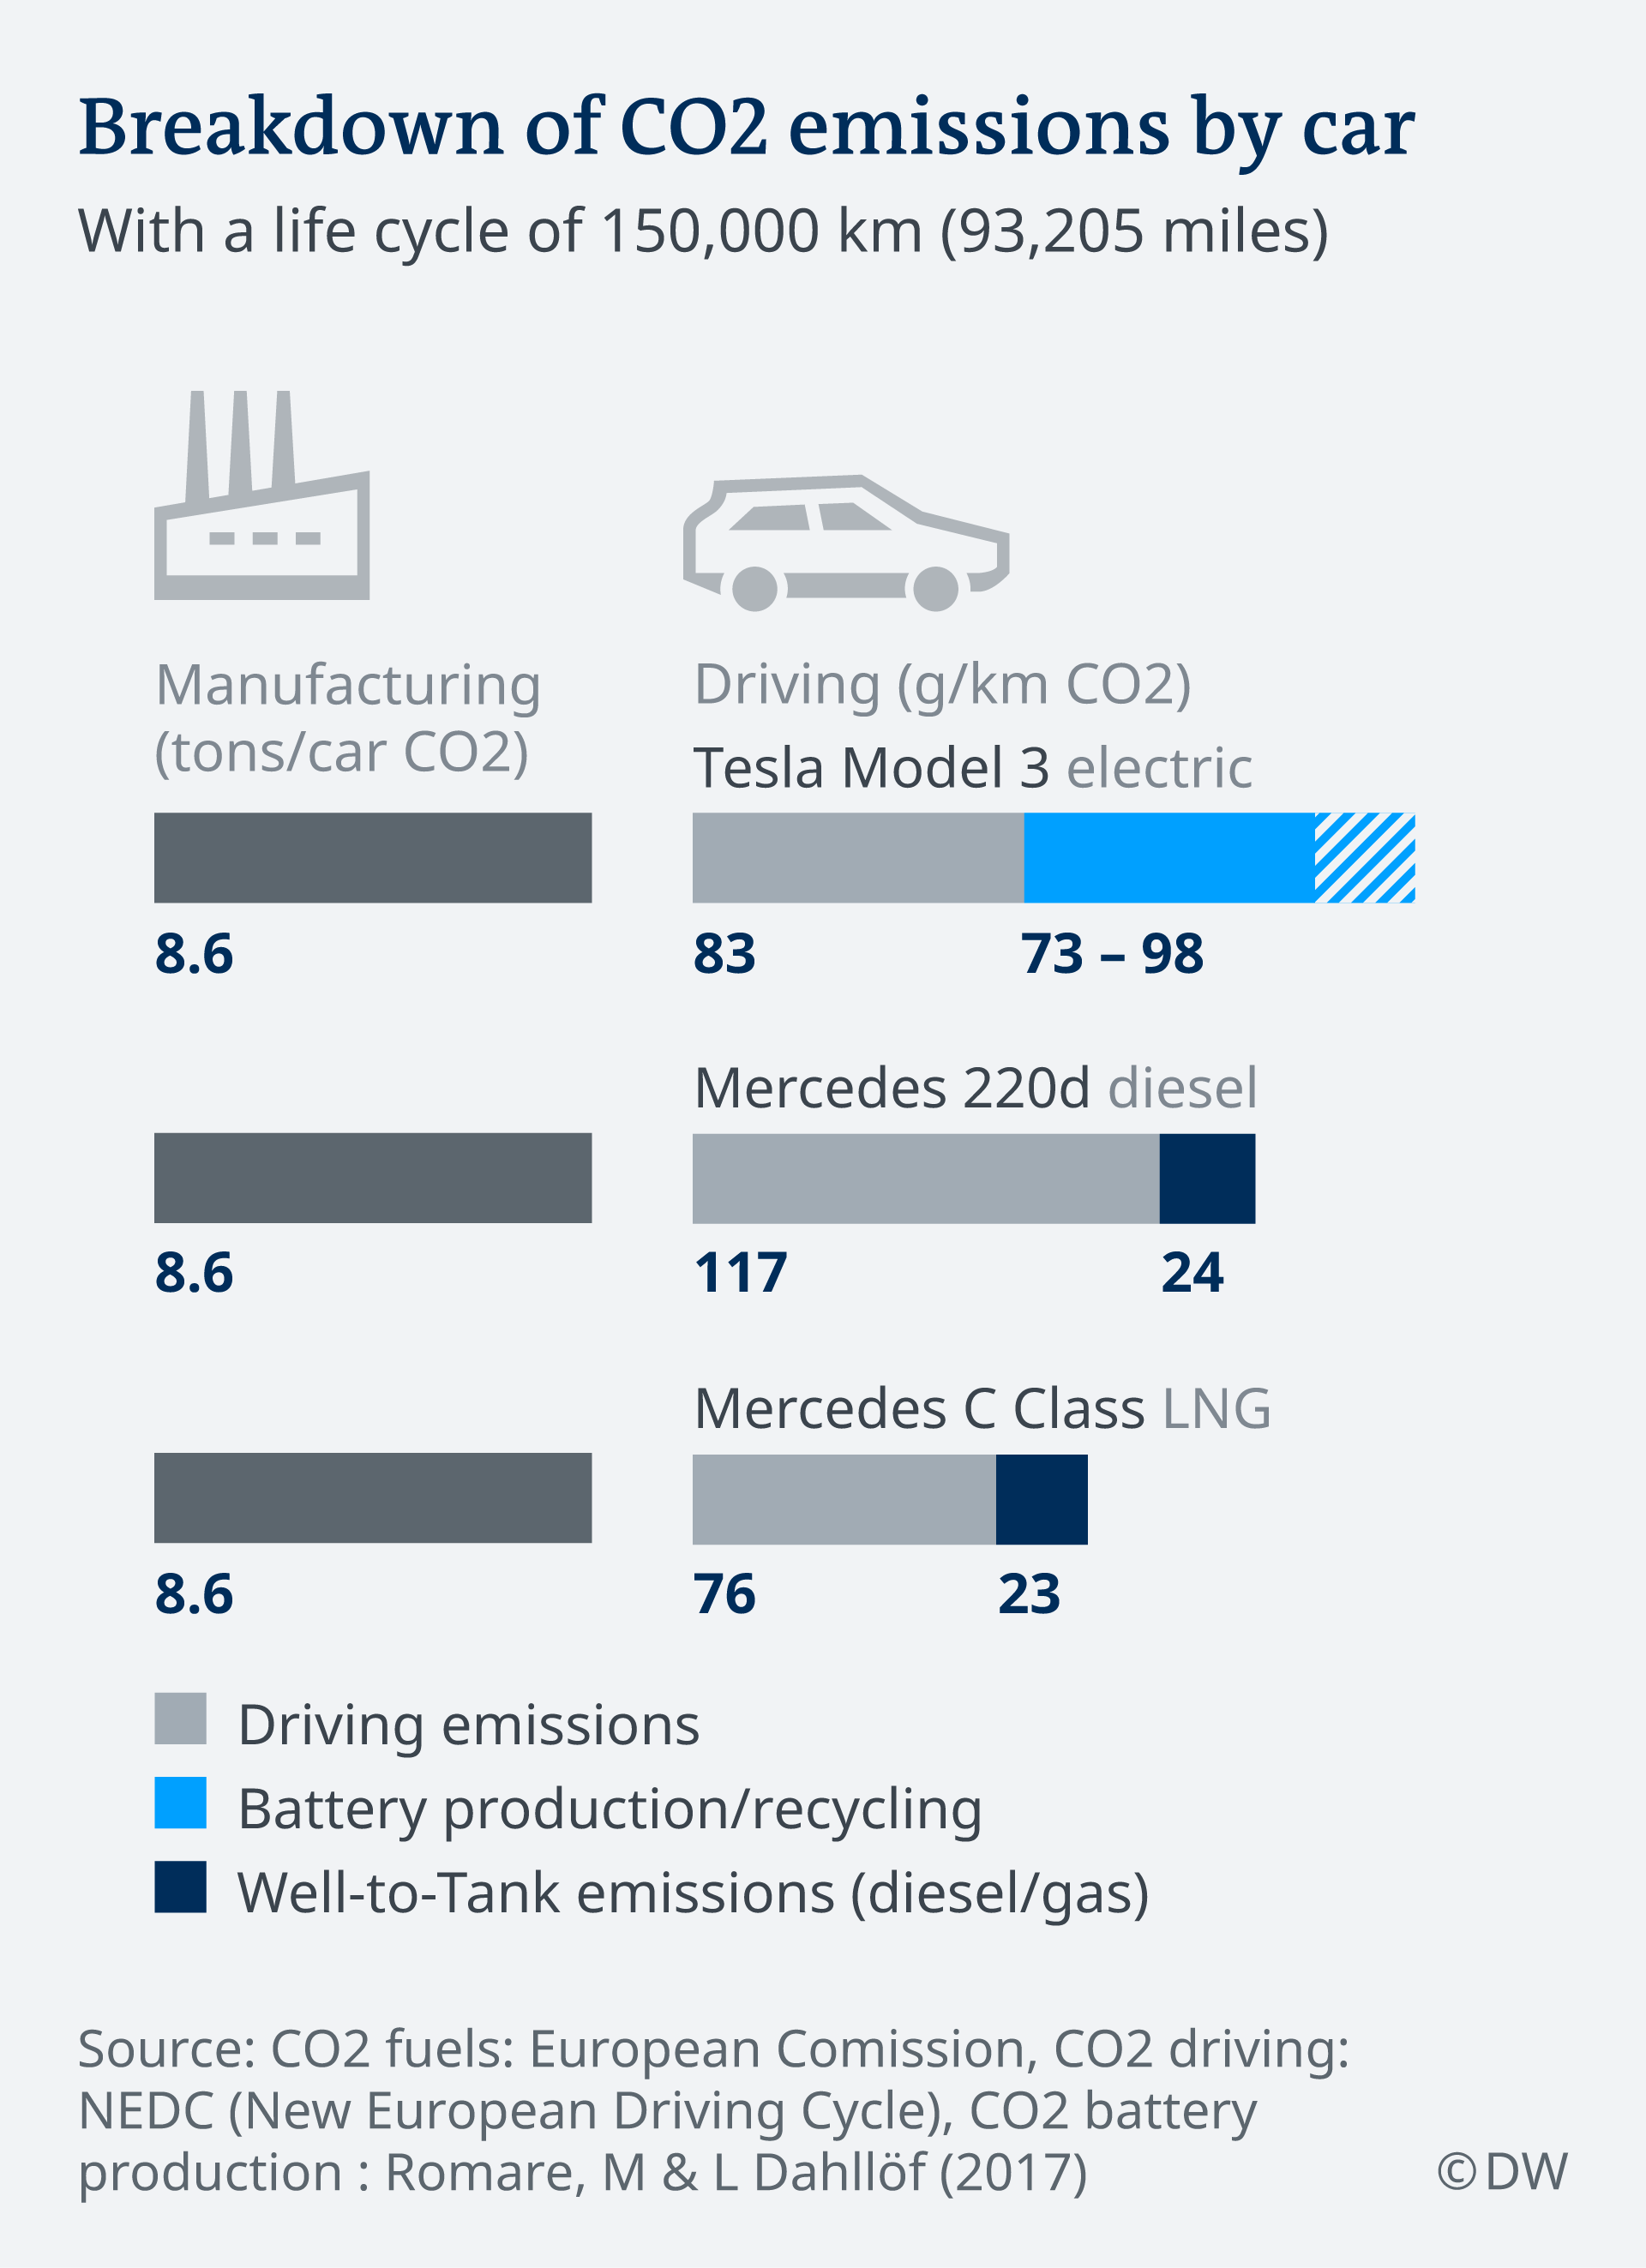 Ifo Study Casts Doubt On Electric Vehicles Climate Saving Credentials Business Economy And Finance News From A German Perspective Dw 25 04 2019